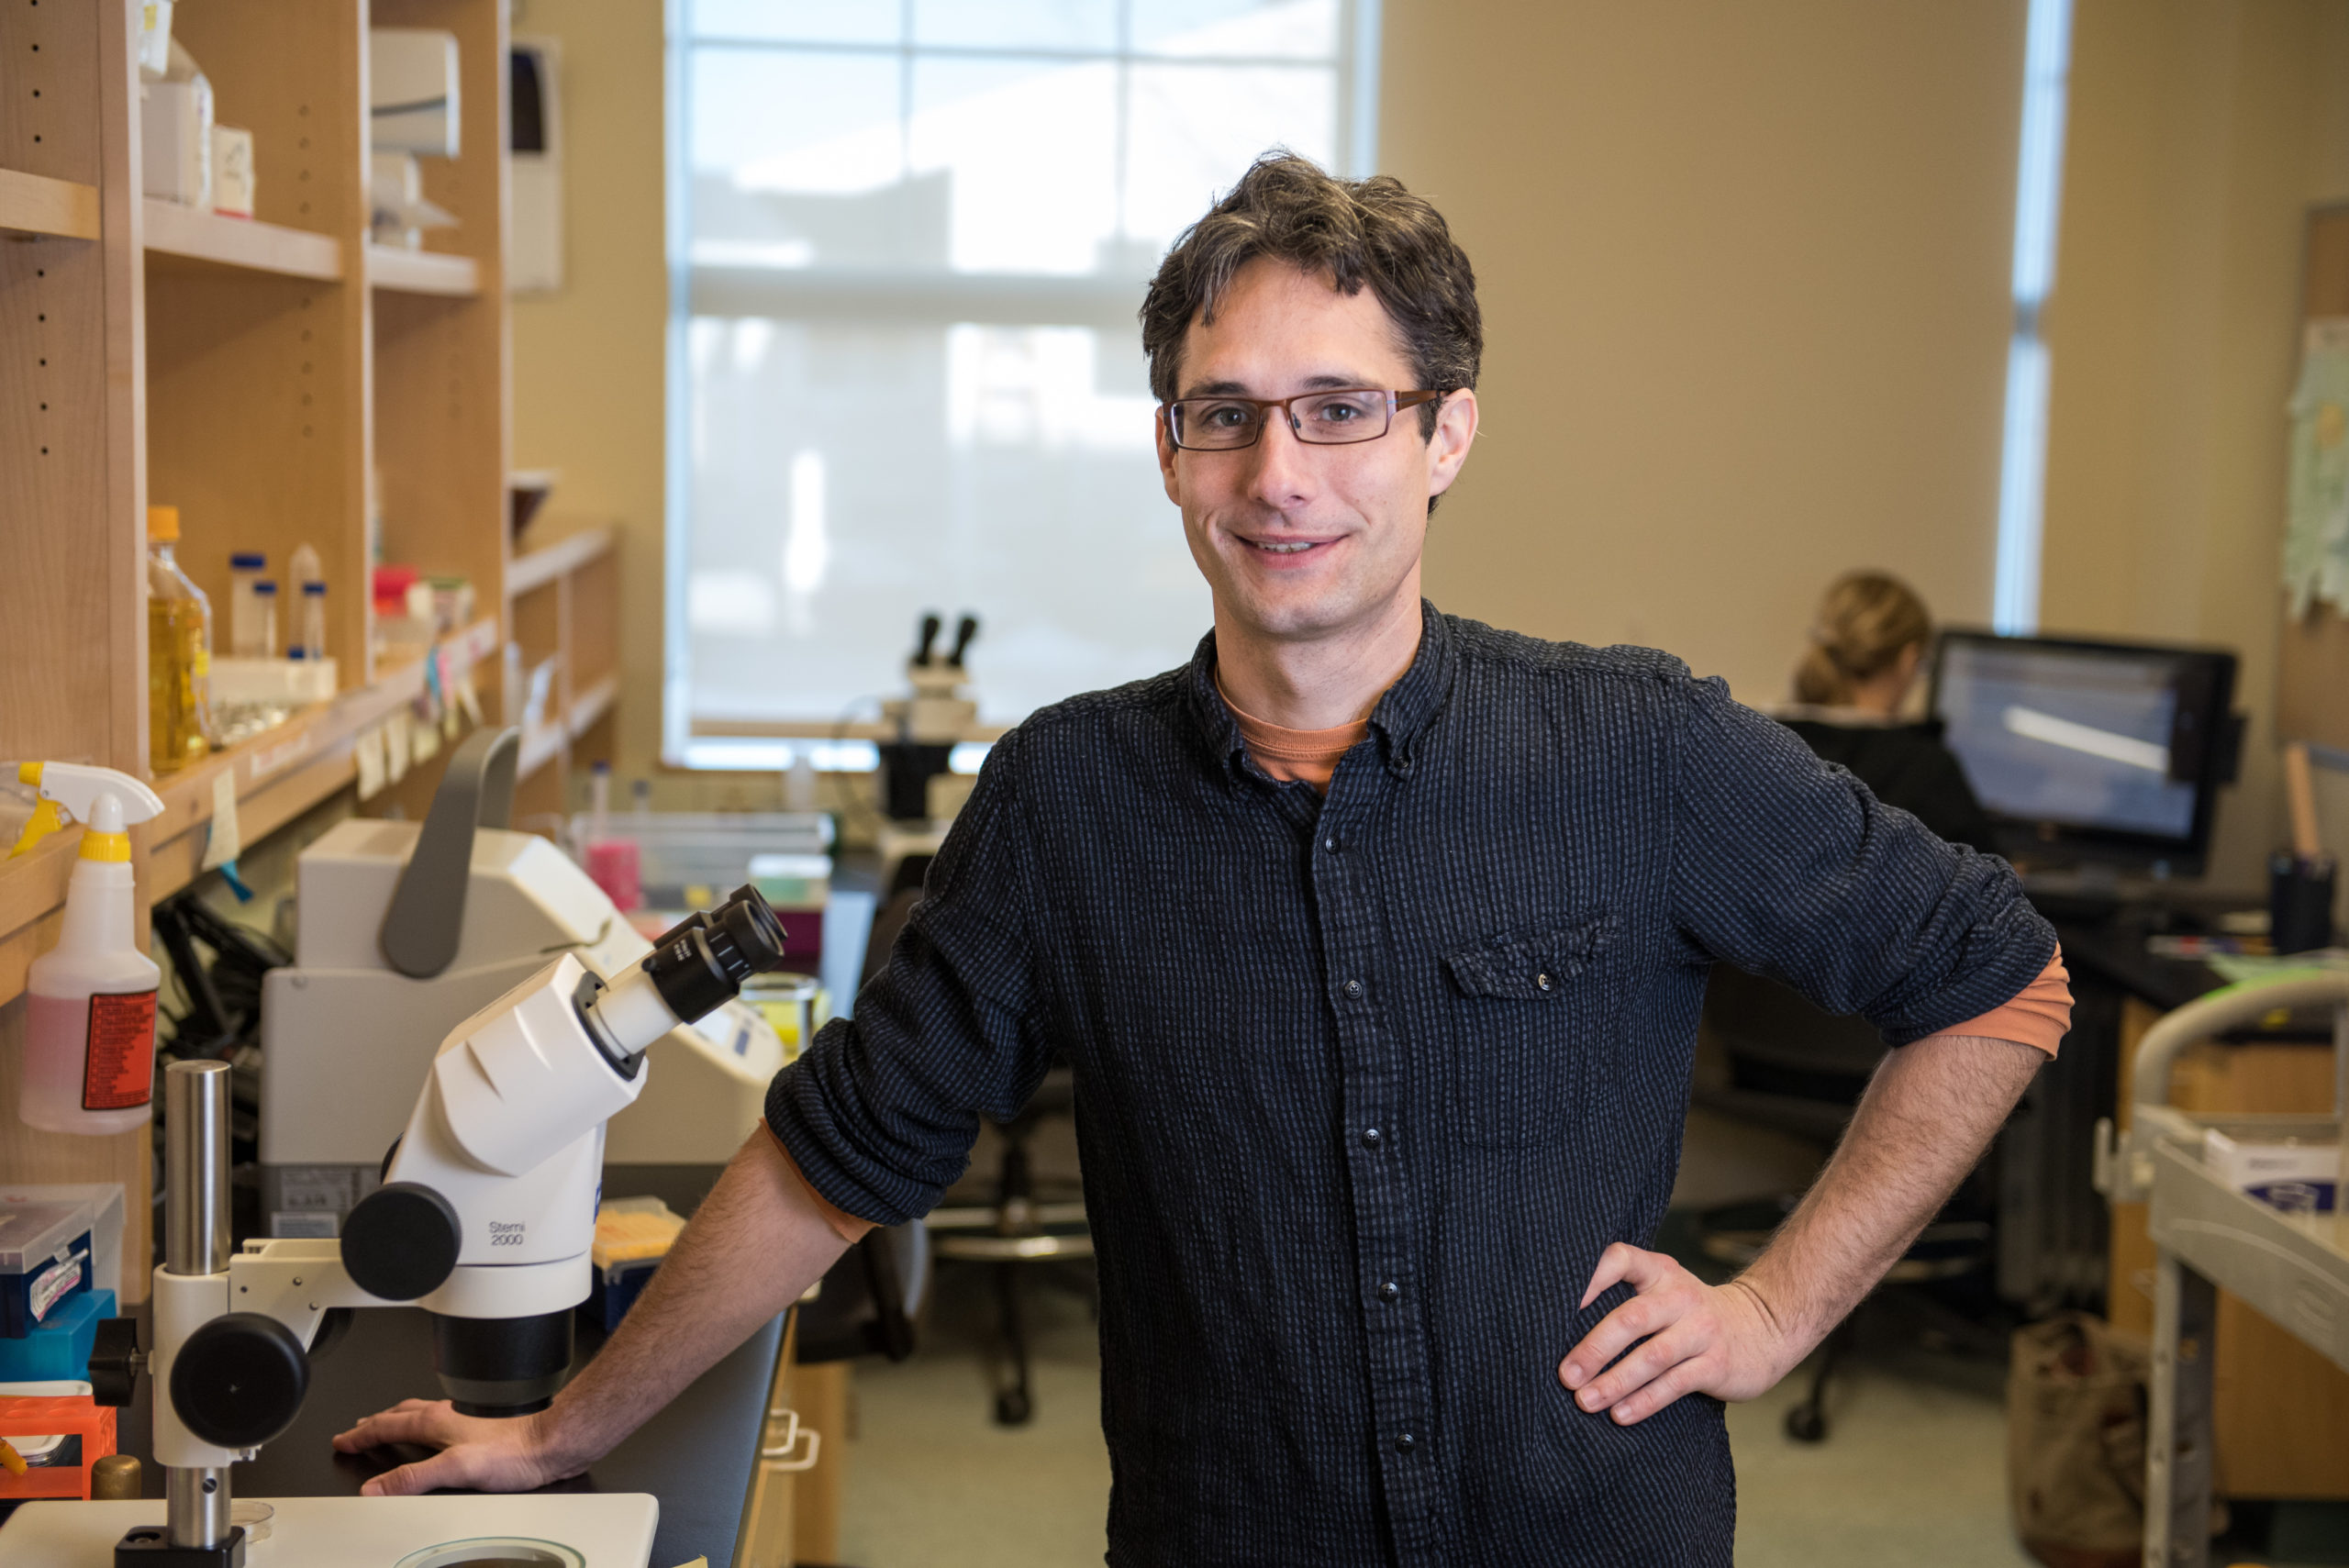 Biologists Identify Pathways That Extend Lifespan by 500%